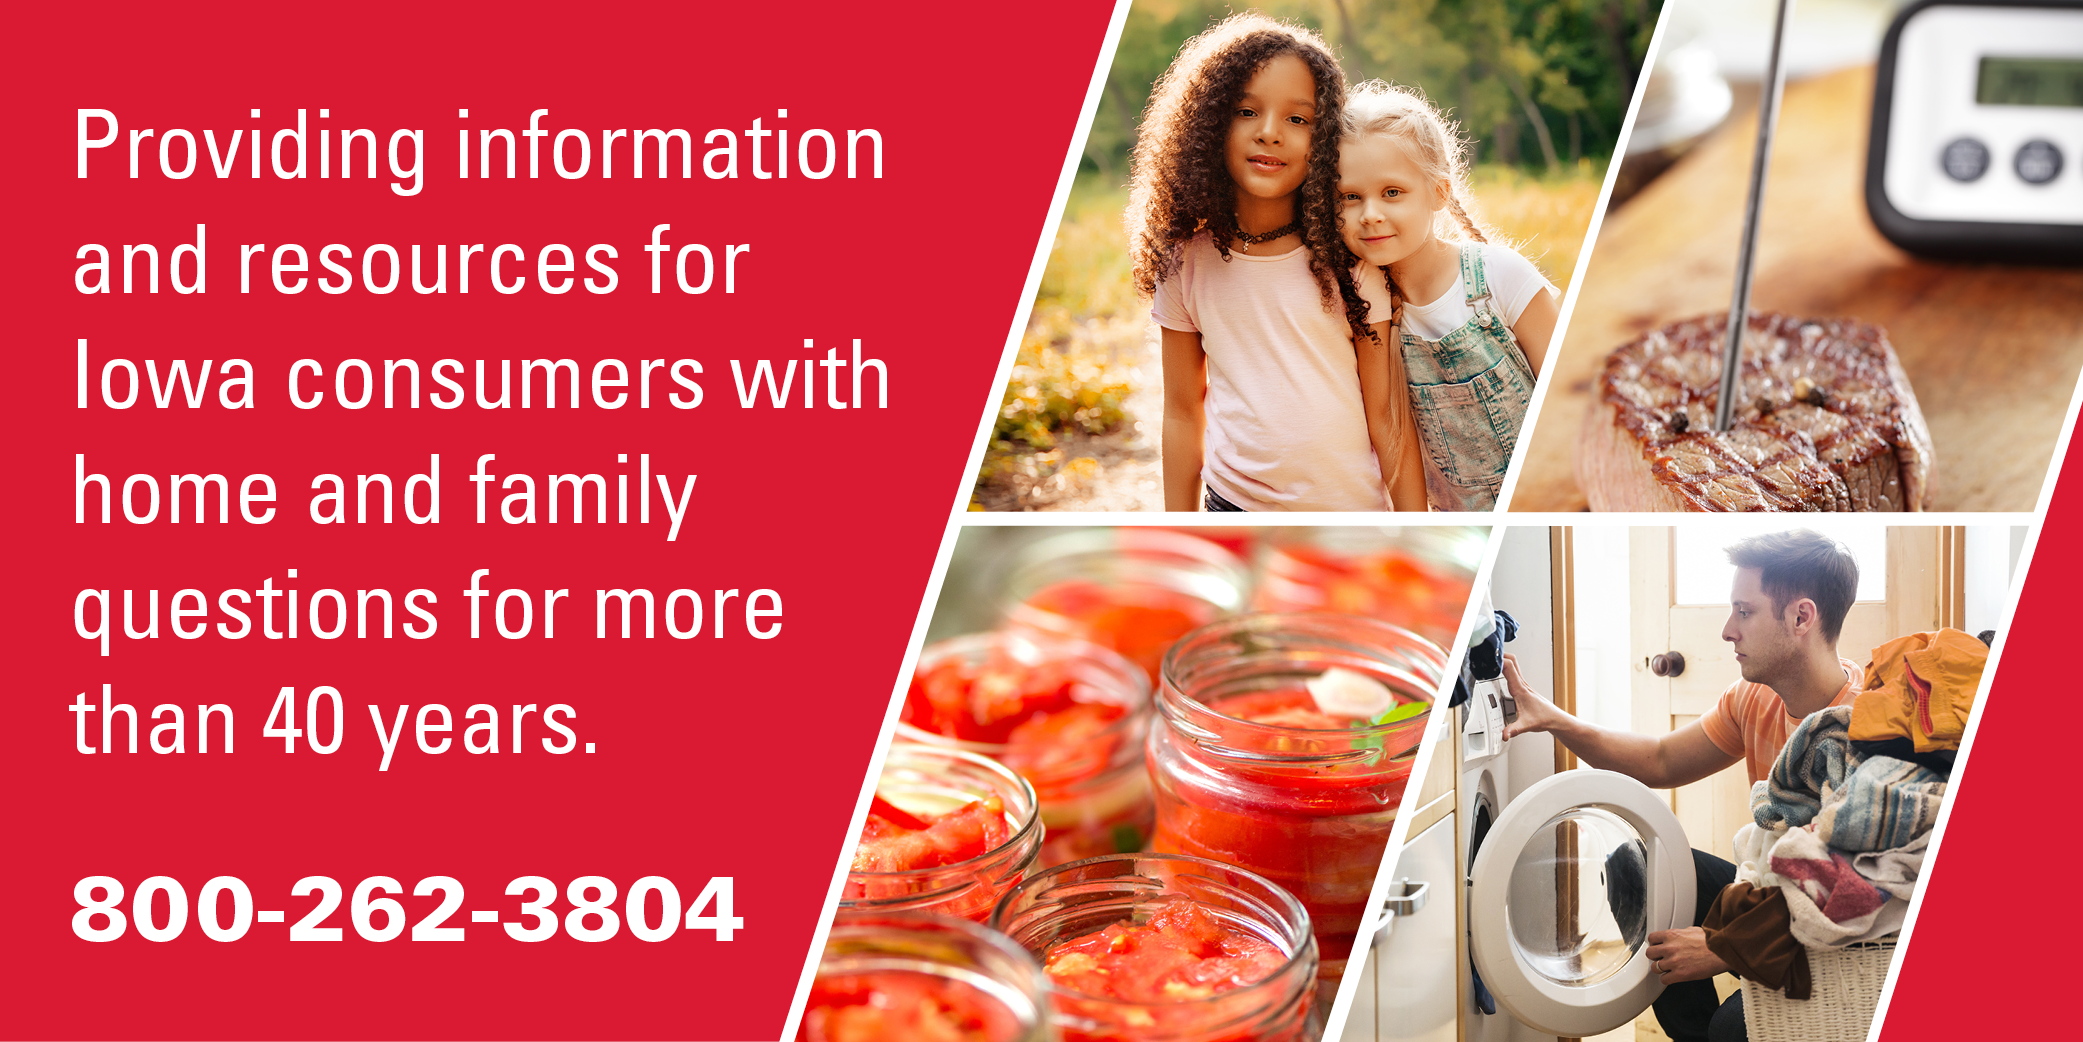 Providing information and resources for Iowa consumers with home and family questions for more than 40 years.